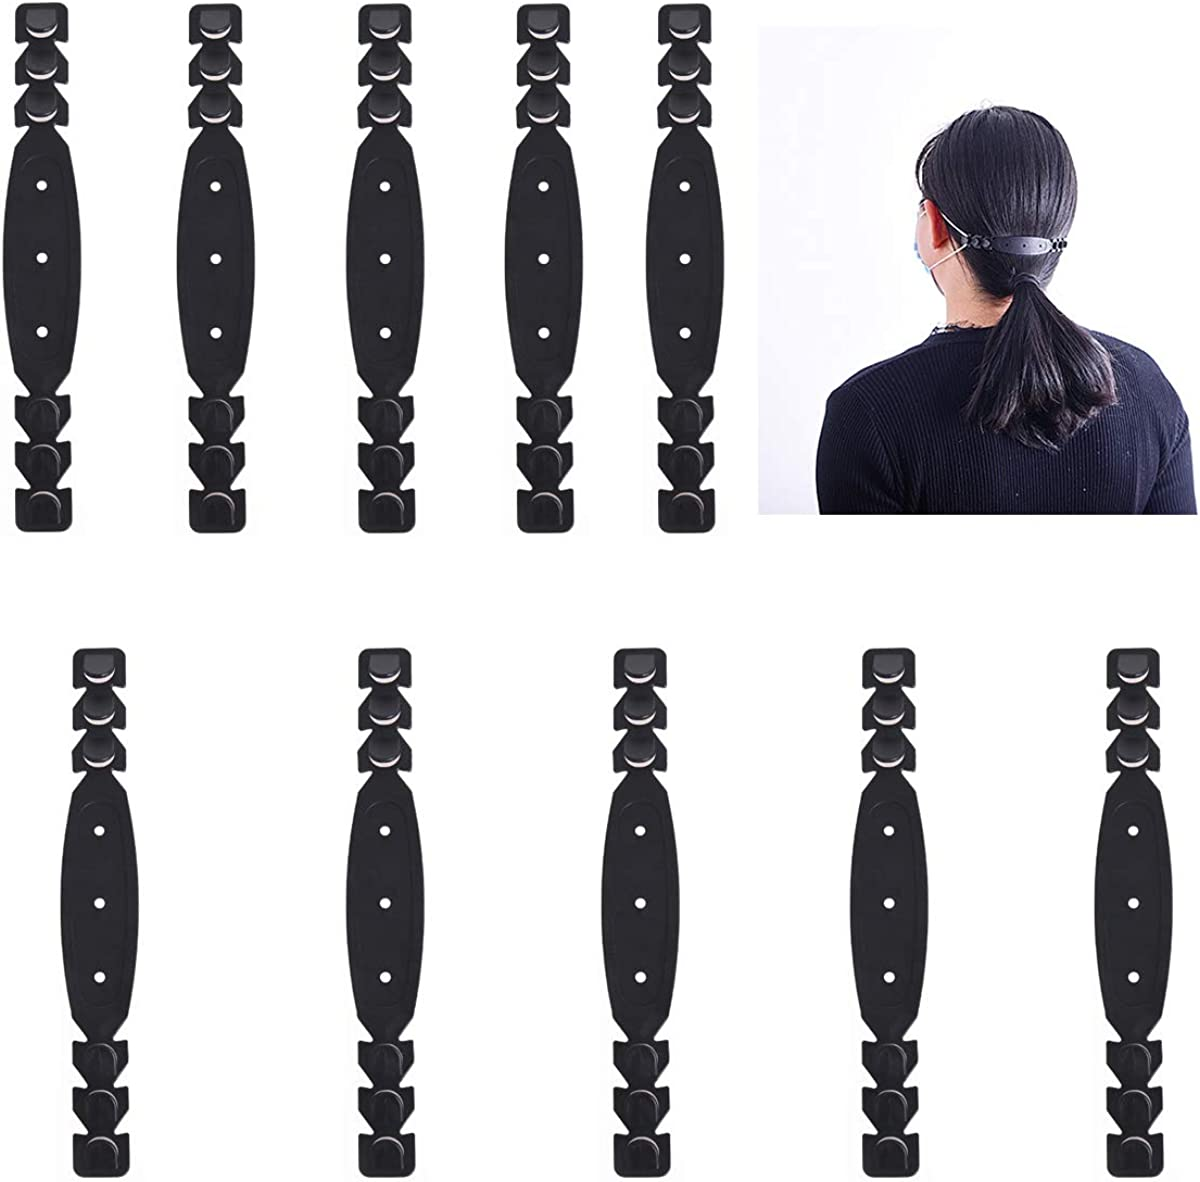 Relax Your Ears TiGog 10 Pcs Mask Ear Cord Extension Buckle Mask Extension Hook Adjustable Buckle Ear Rope Mask Extension Buckle Mask Hook Ear Wear Type Buckle for All Kinds of Mask